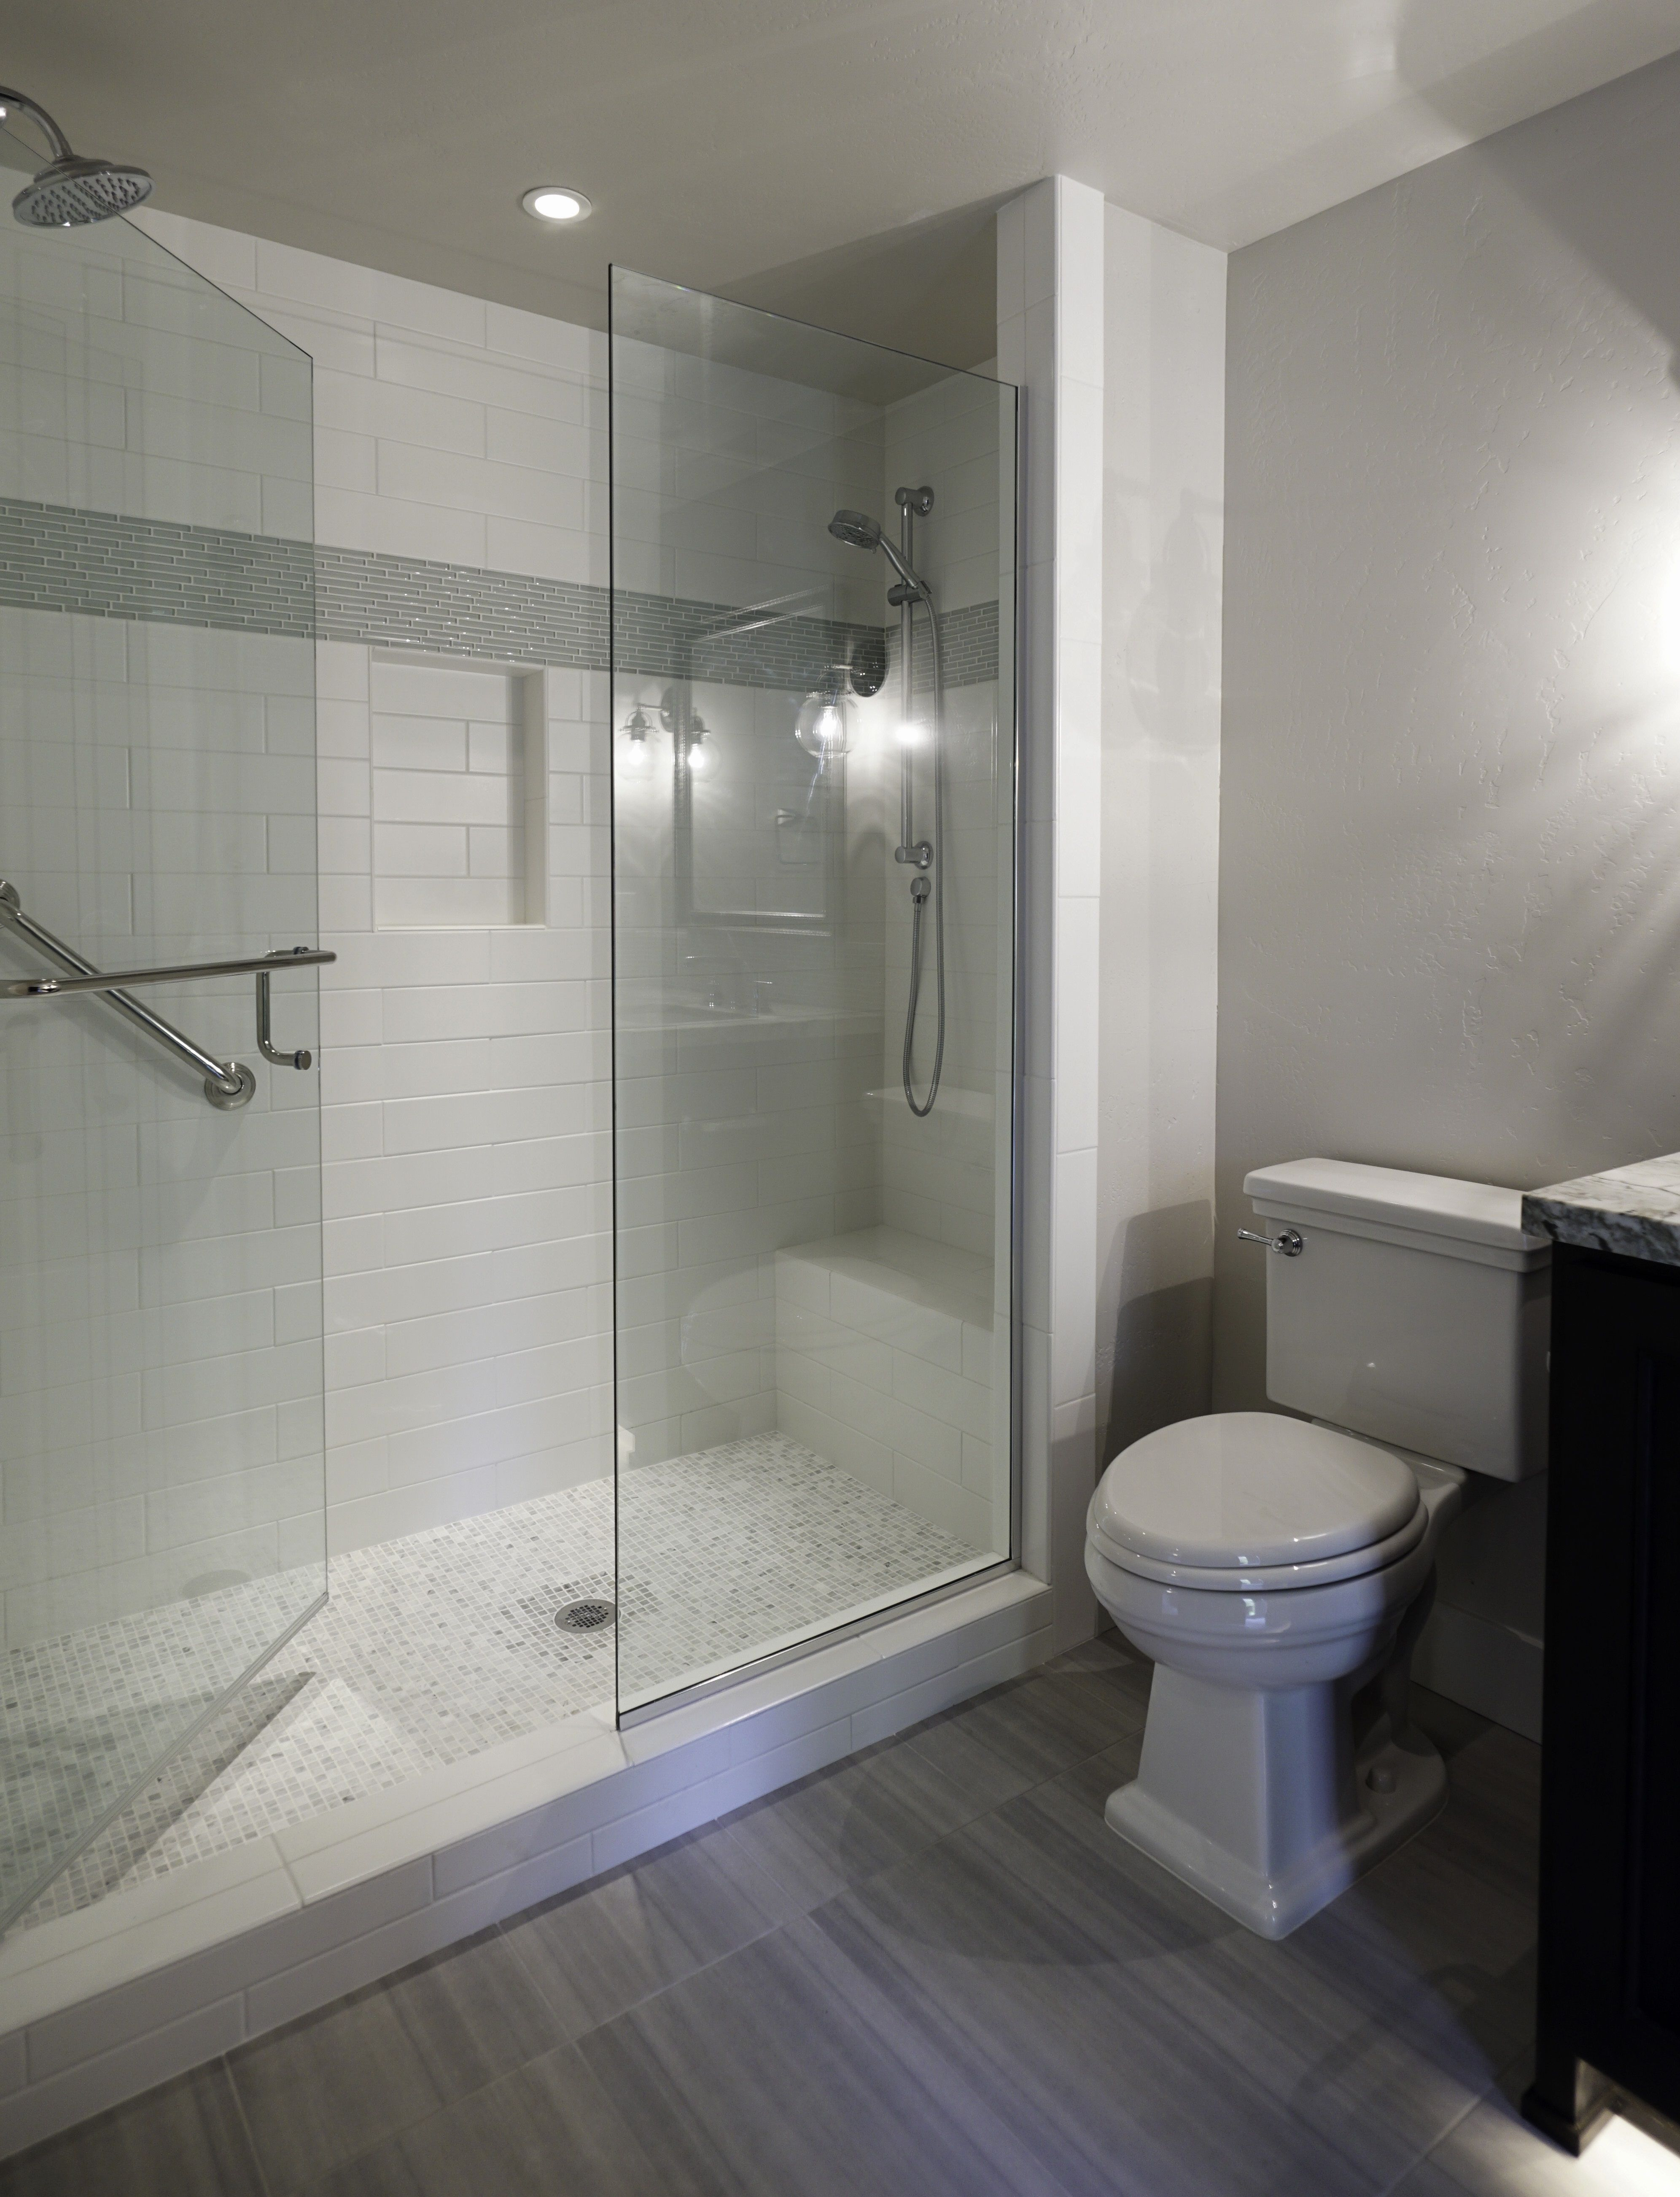 Tiletuesday features a gorgeous installation by dc fine homes out tiletuesday features a gorgeous installation by dc fine homes out of eugene oregon using shower tilesshower dailygadgetfo Gallery